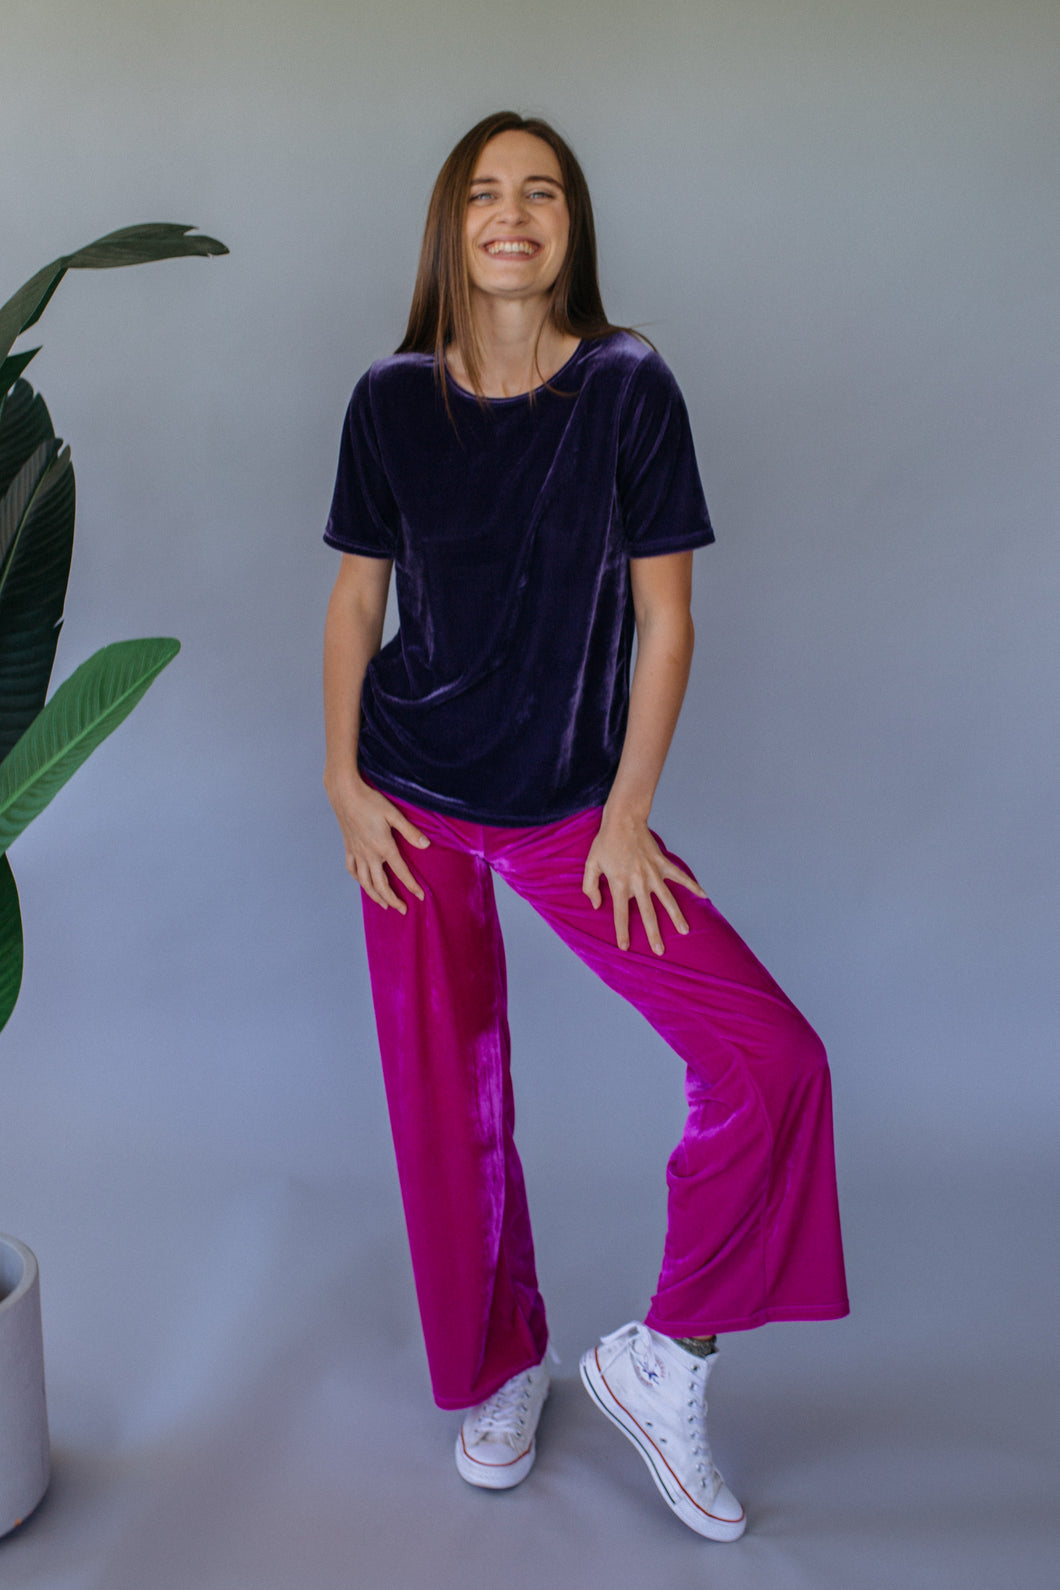 Lavender Grey Velvet easy Fit Tee - Top - Megan Crook